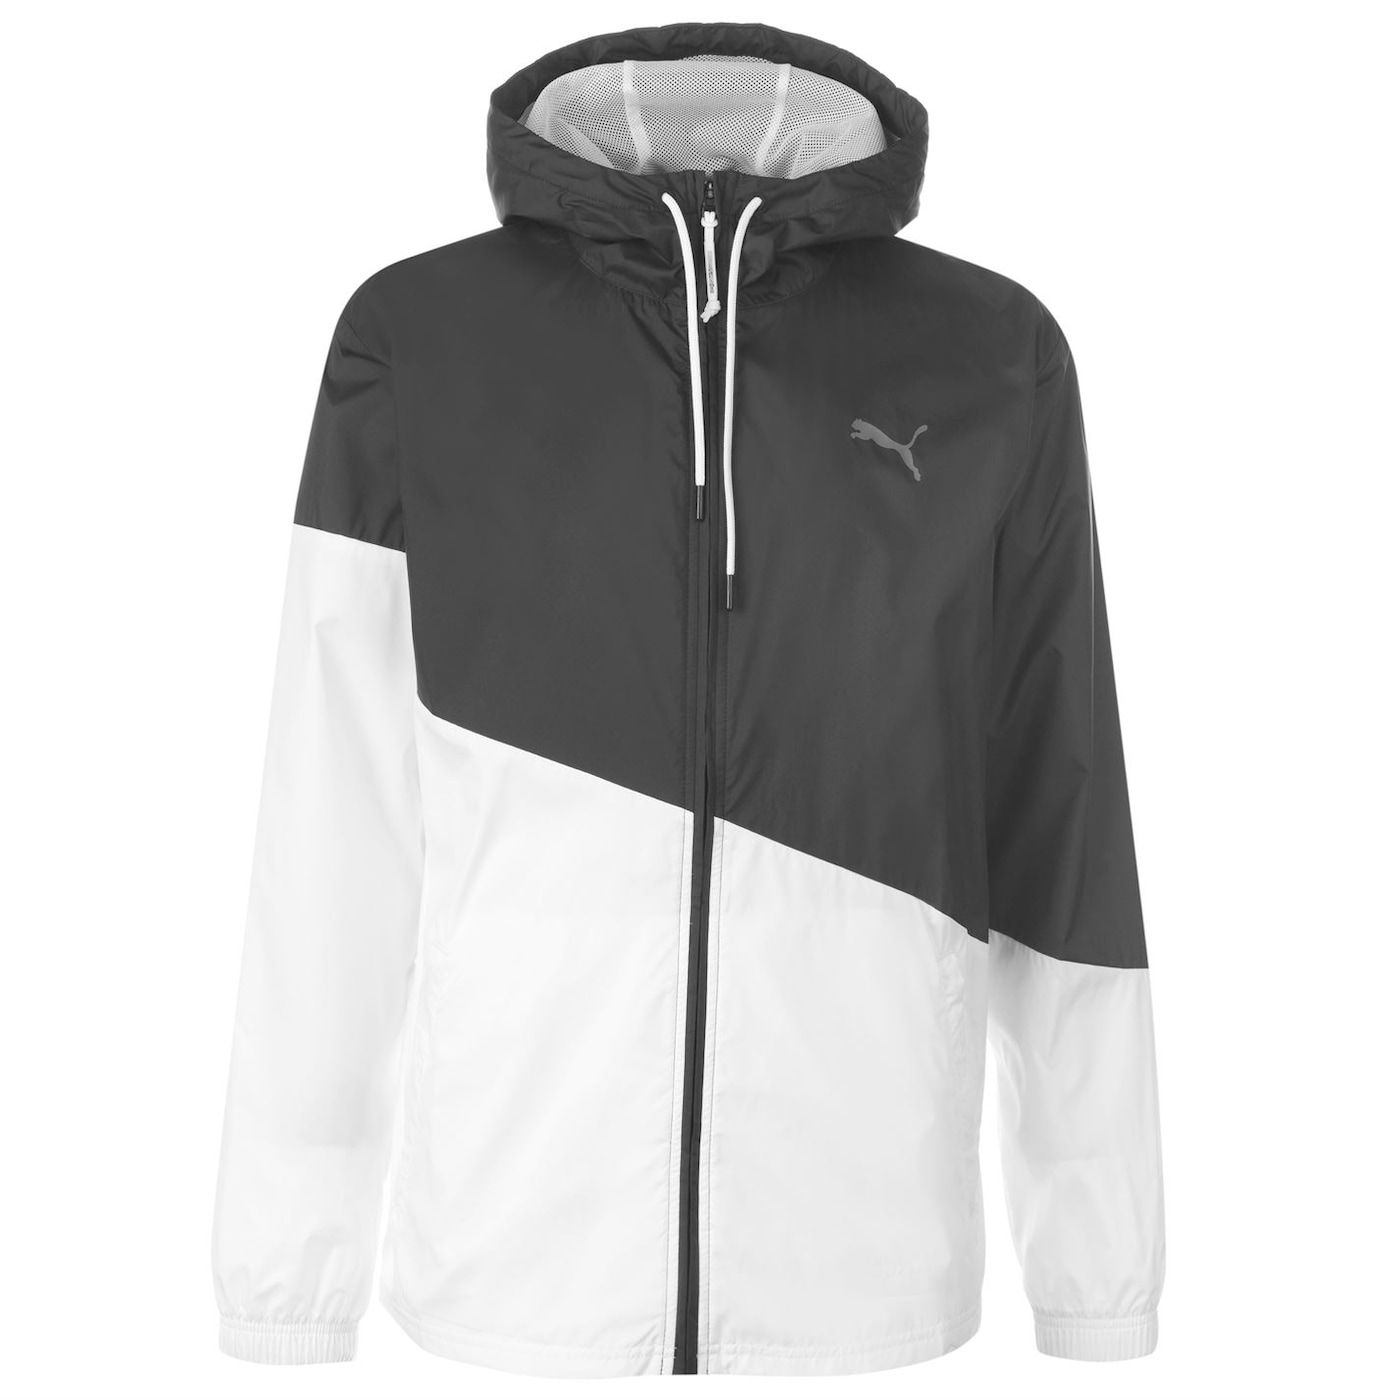 Puma ACE Windbreaker pánska bunda